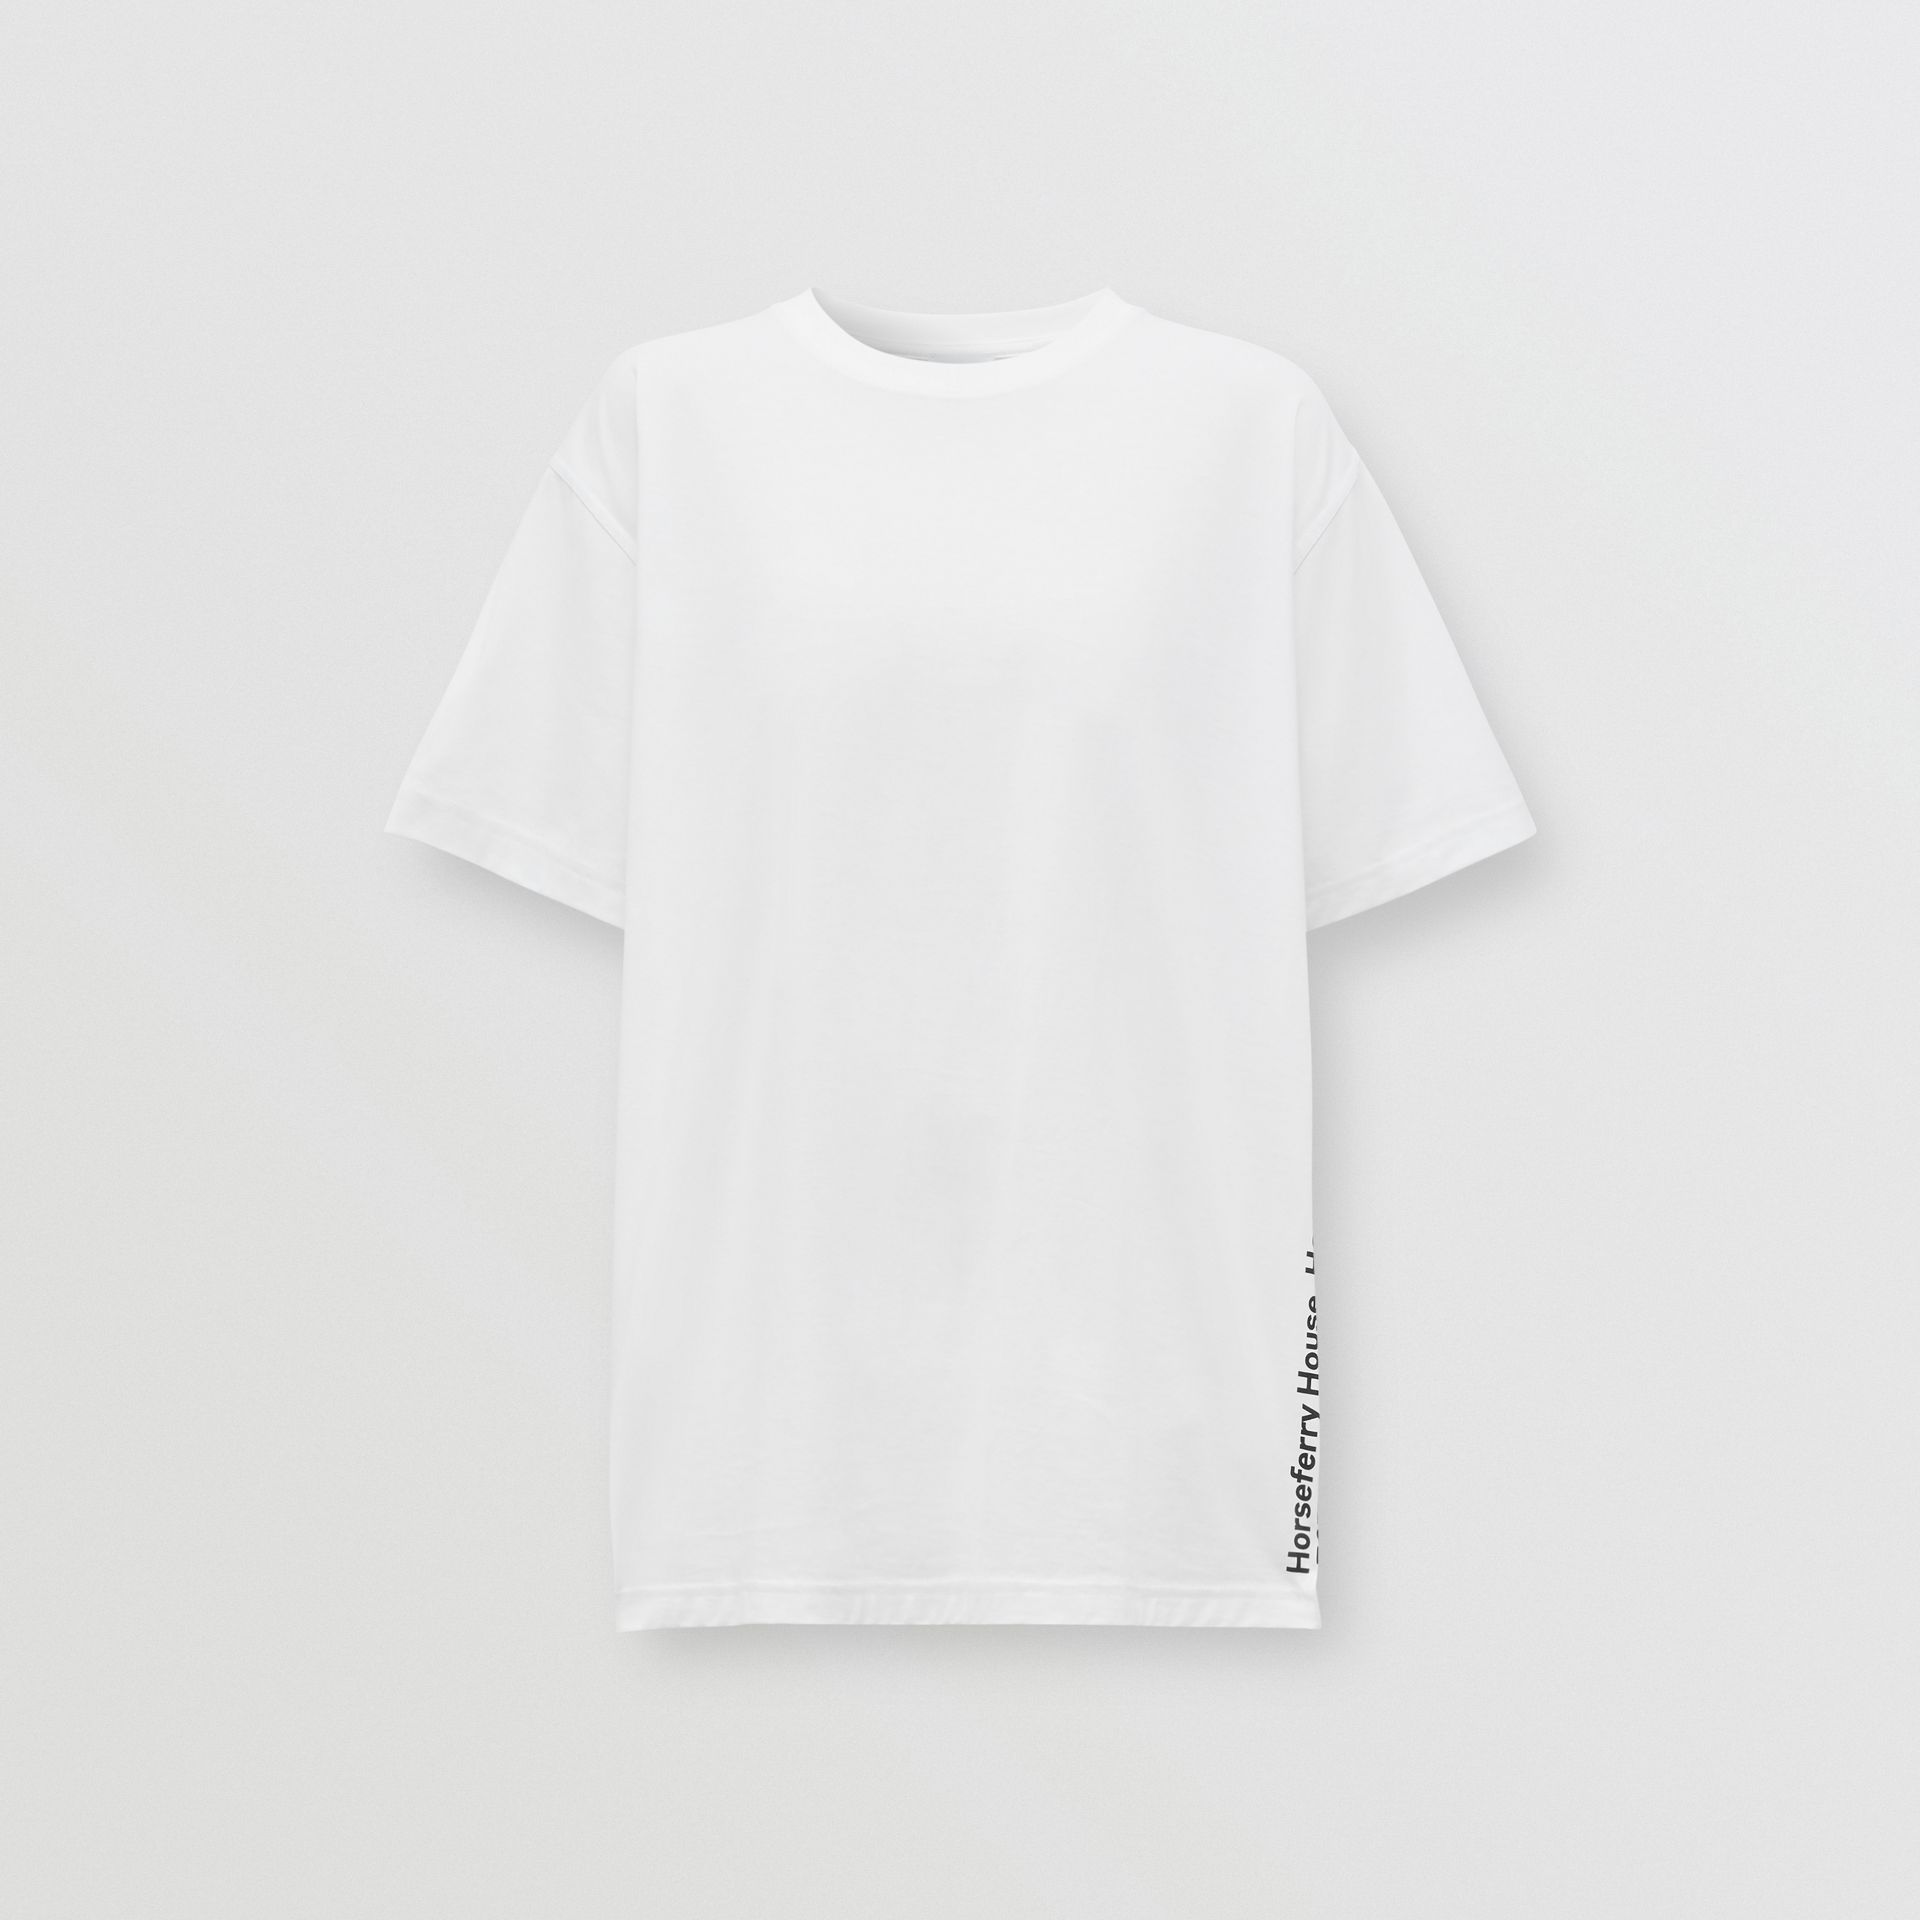 Coordinates Print Cotton Oversized T-shirt in White - Women | Burberry - gallery image 3